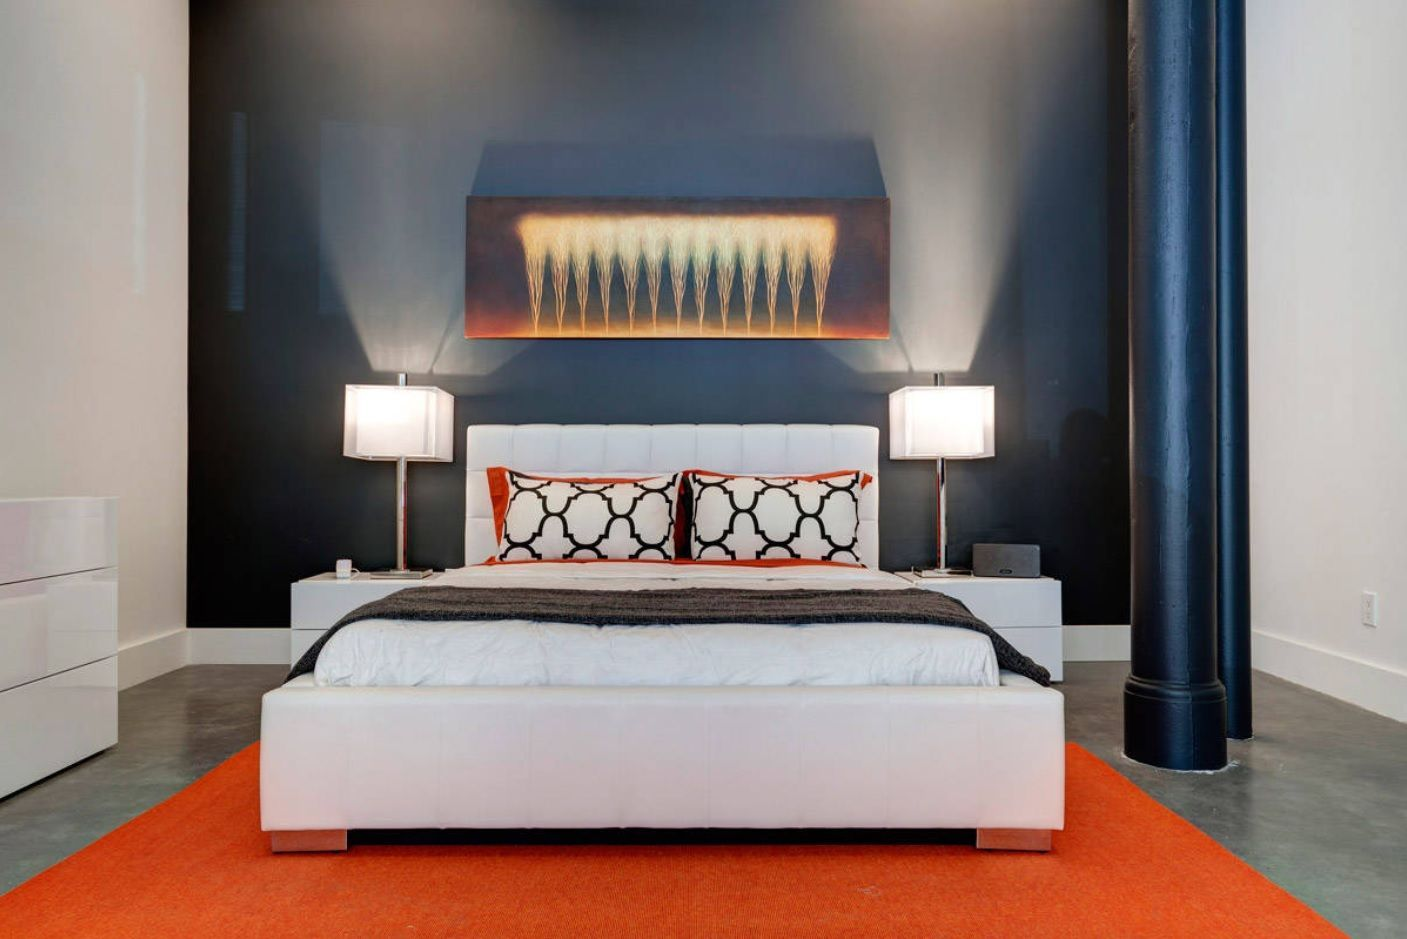 15 Most Topical Modern Queen Bedroom Furniture Set Ideas. Dark colored accent wall at the headboard